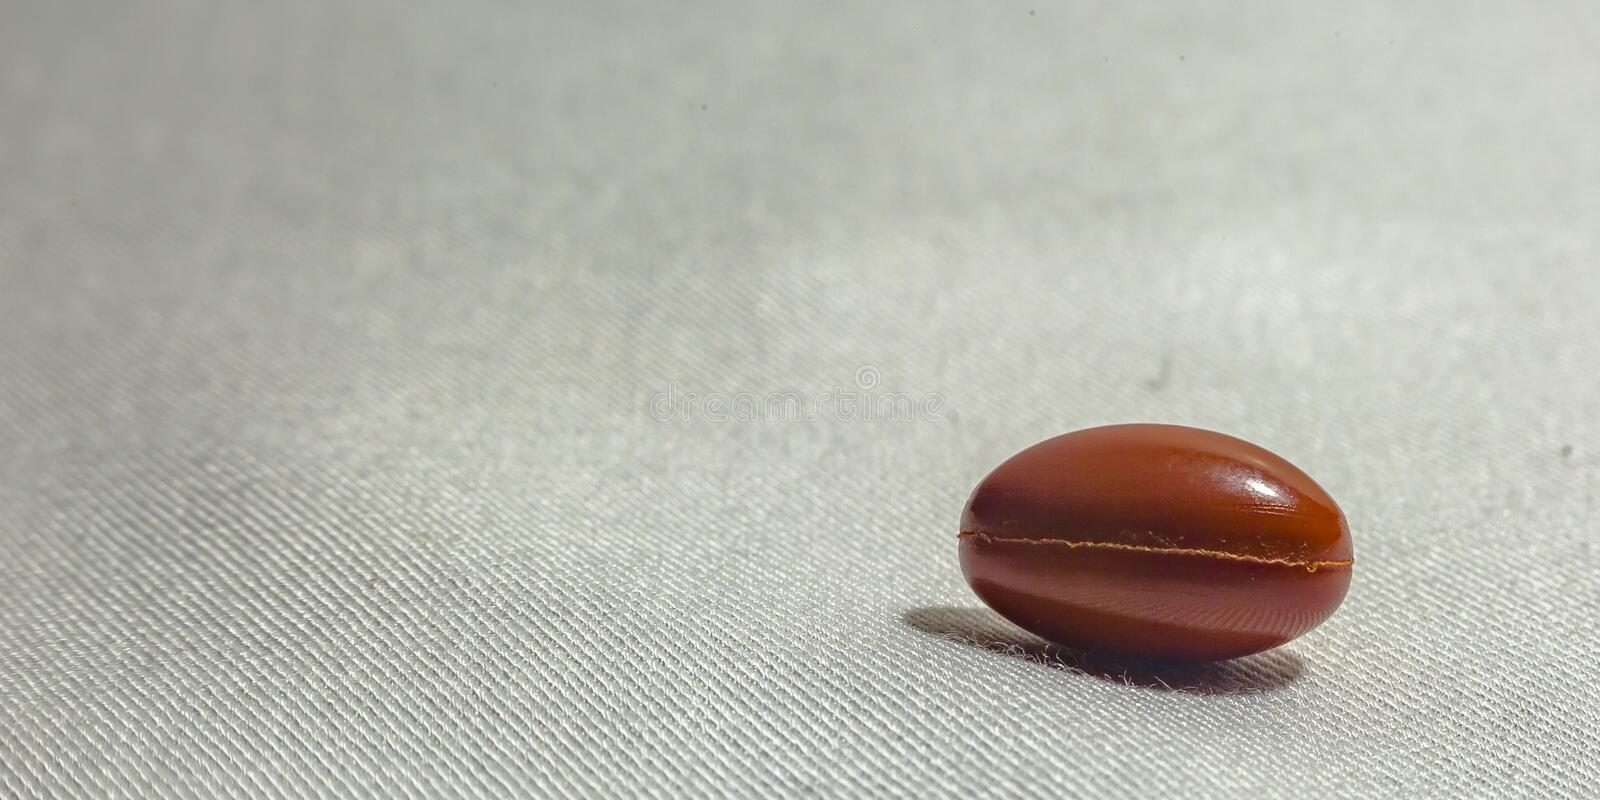 Single pill on a white fiber texture background. Close up shot of single pill agianst a white background with a fiber texture. The orange pill has an oblong stock image